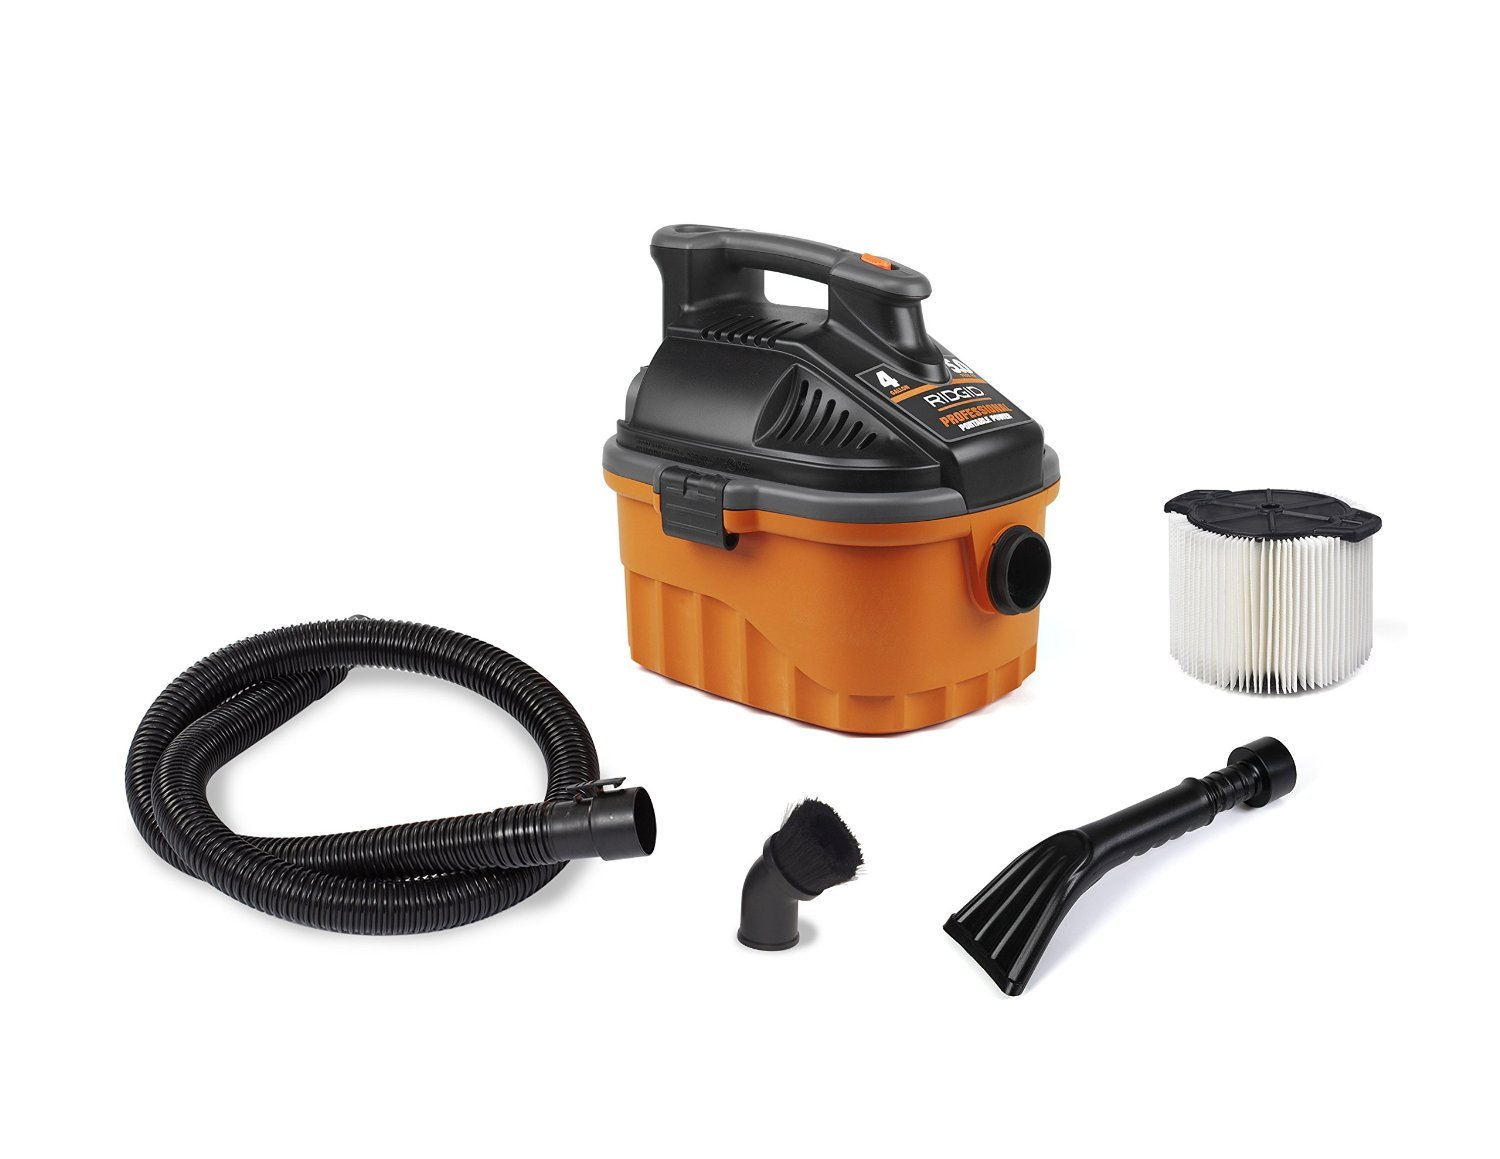 Amazon.com: RIDGID Wet Dry Vacuums VAC4000 Powerful And Portable Wet Dry  Vacuum Cleaner, Includes 4 Gallon, 5.0 Peak Horsepower Wet Dry Auto Vacuum  Cleaner ...